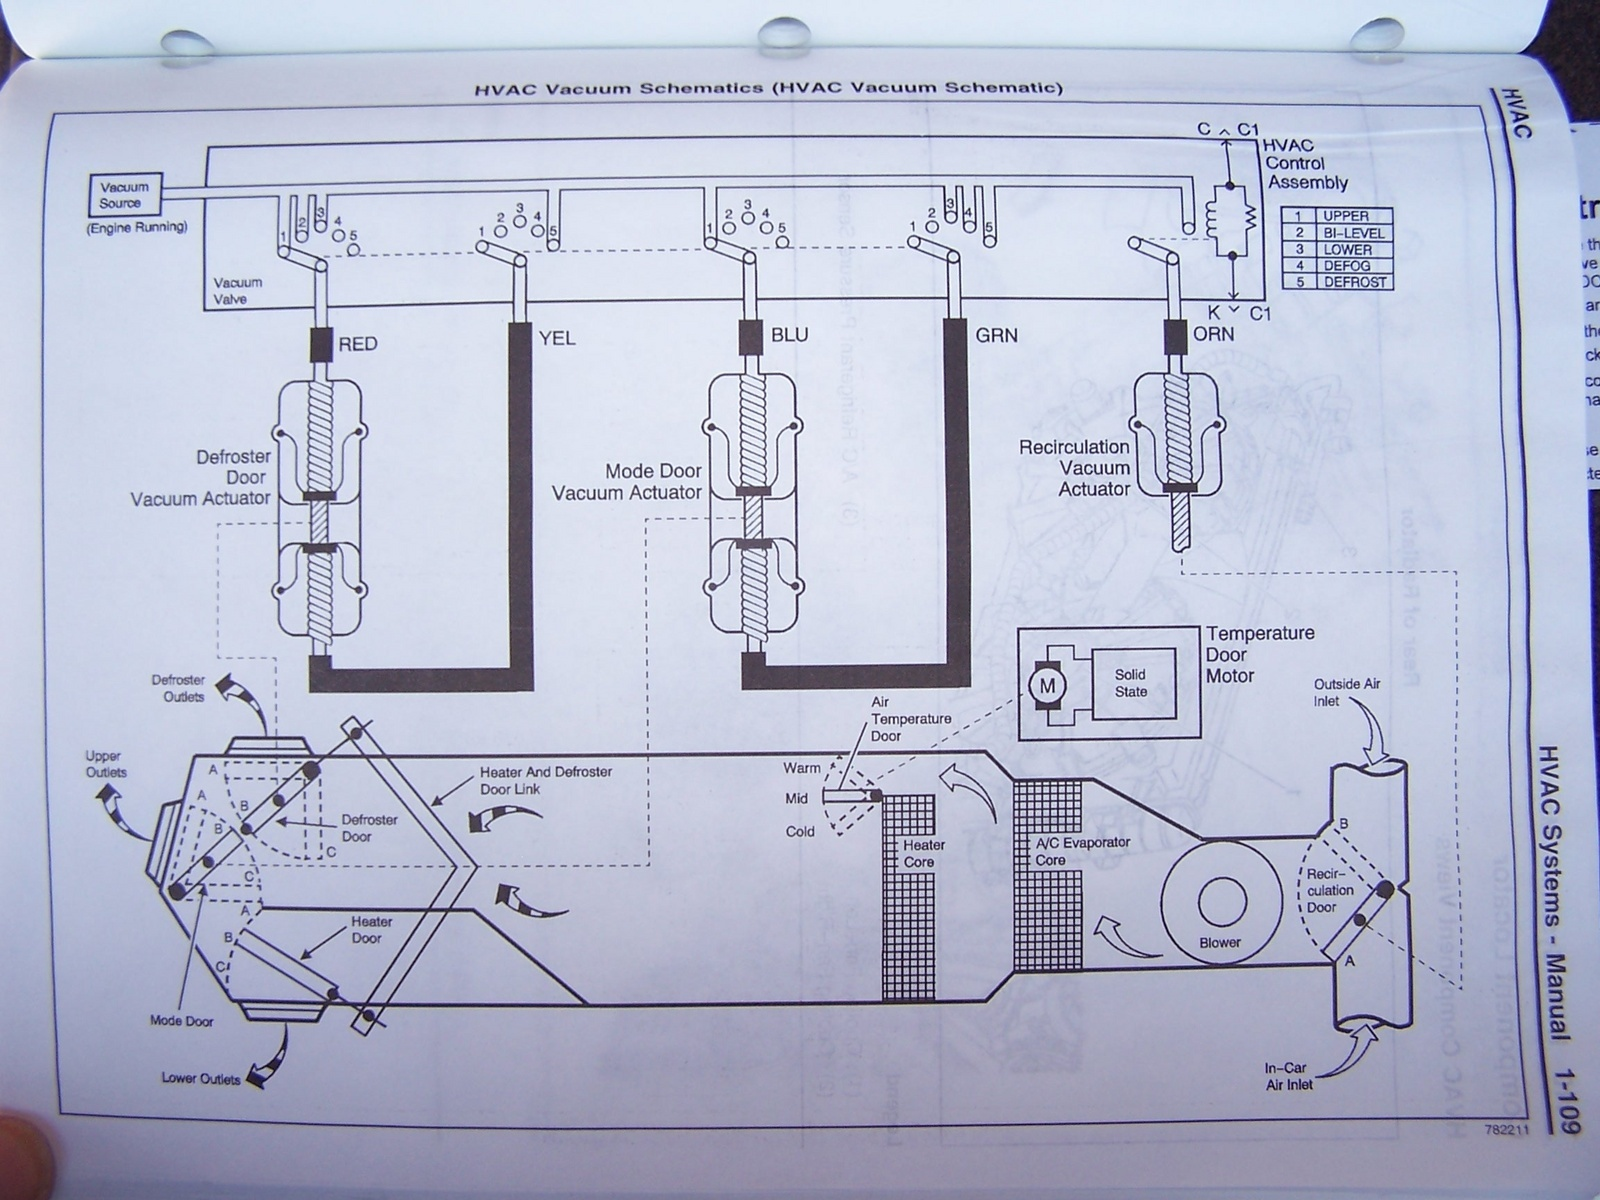 2000 Chevy S10 Cooling System Diagram Not Lossing Wiring Free Gmc Sierra 1500 Questions I Have No Air Flow Through Ignition Bed Parts